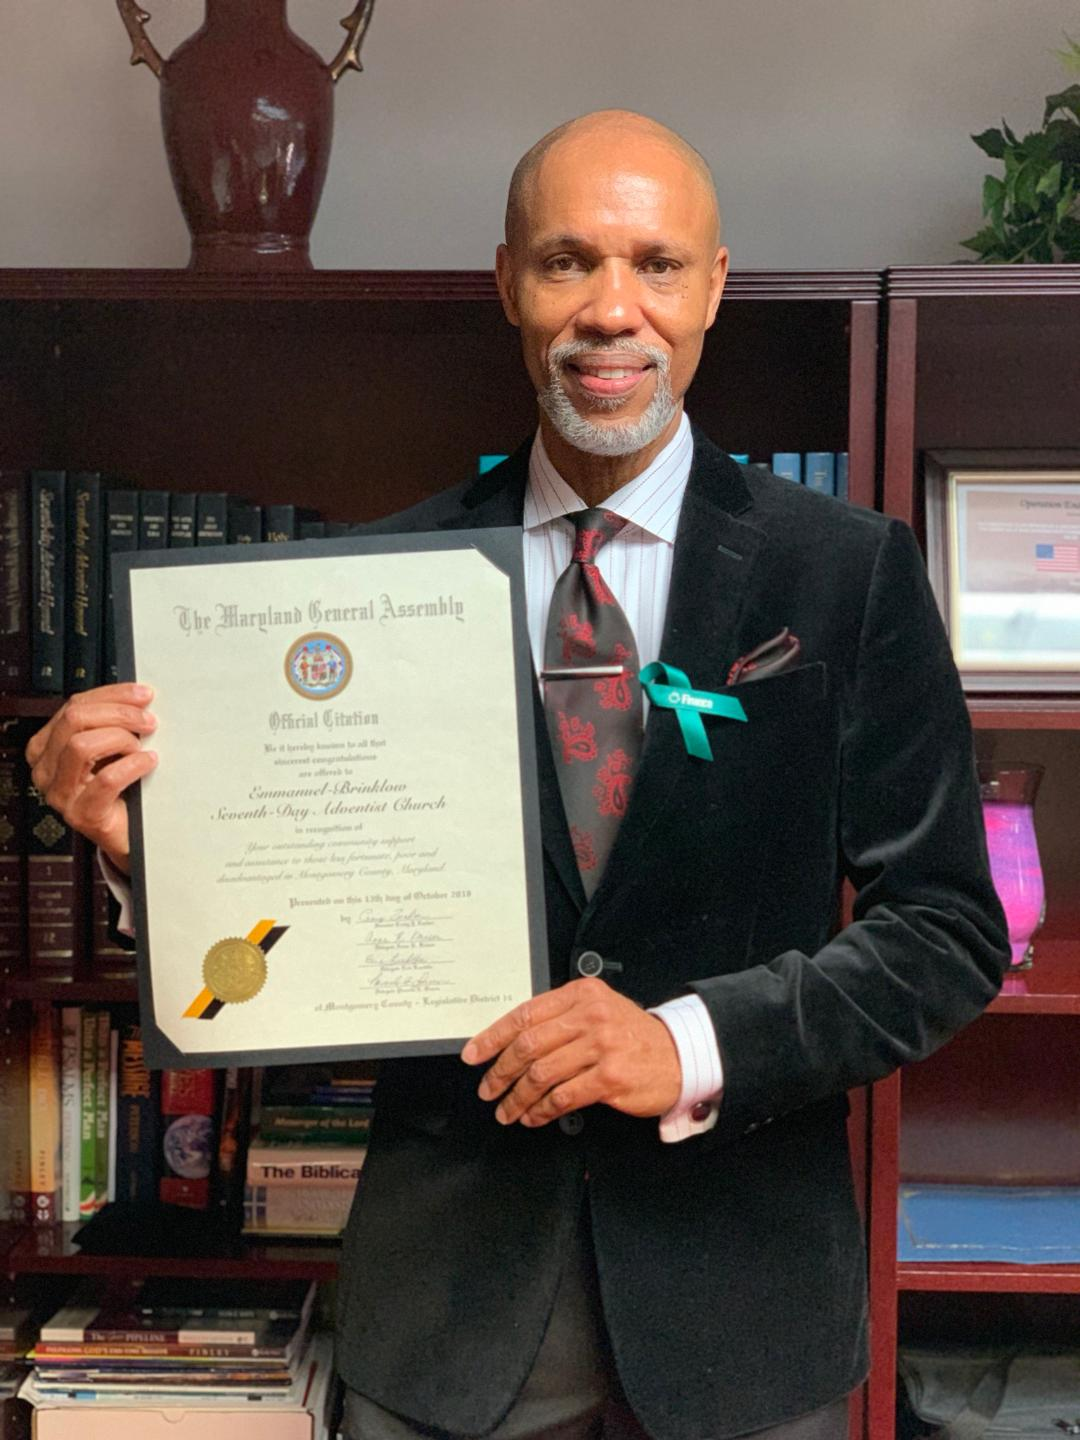 Emmanuel-Brinklow Pastor Anthony Medley displays the citation from the Maryland General Assembly. (Photo: Sheldon Kennedy)